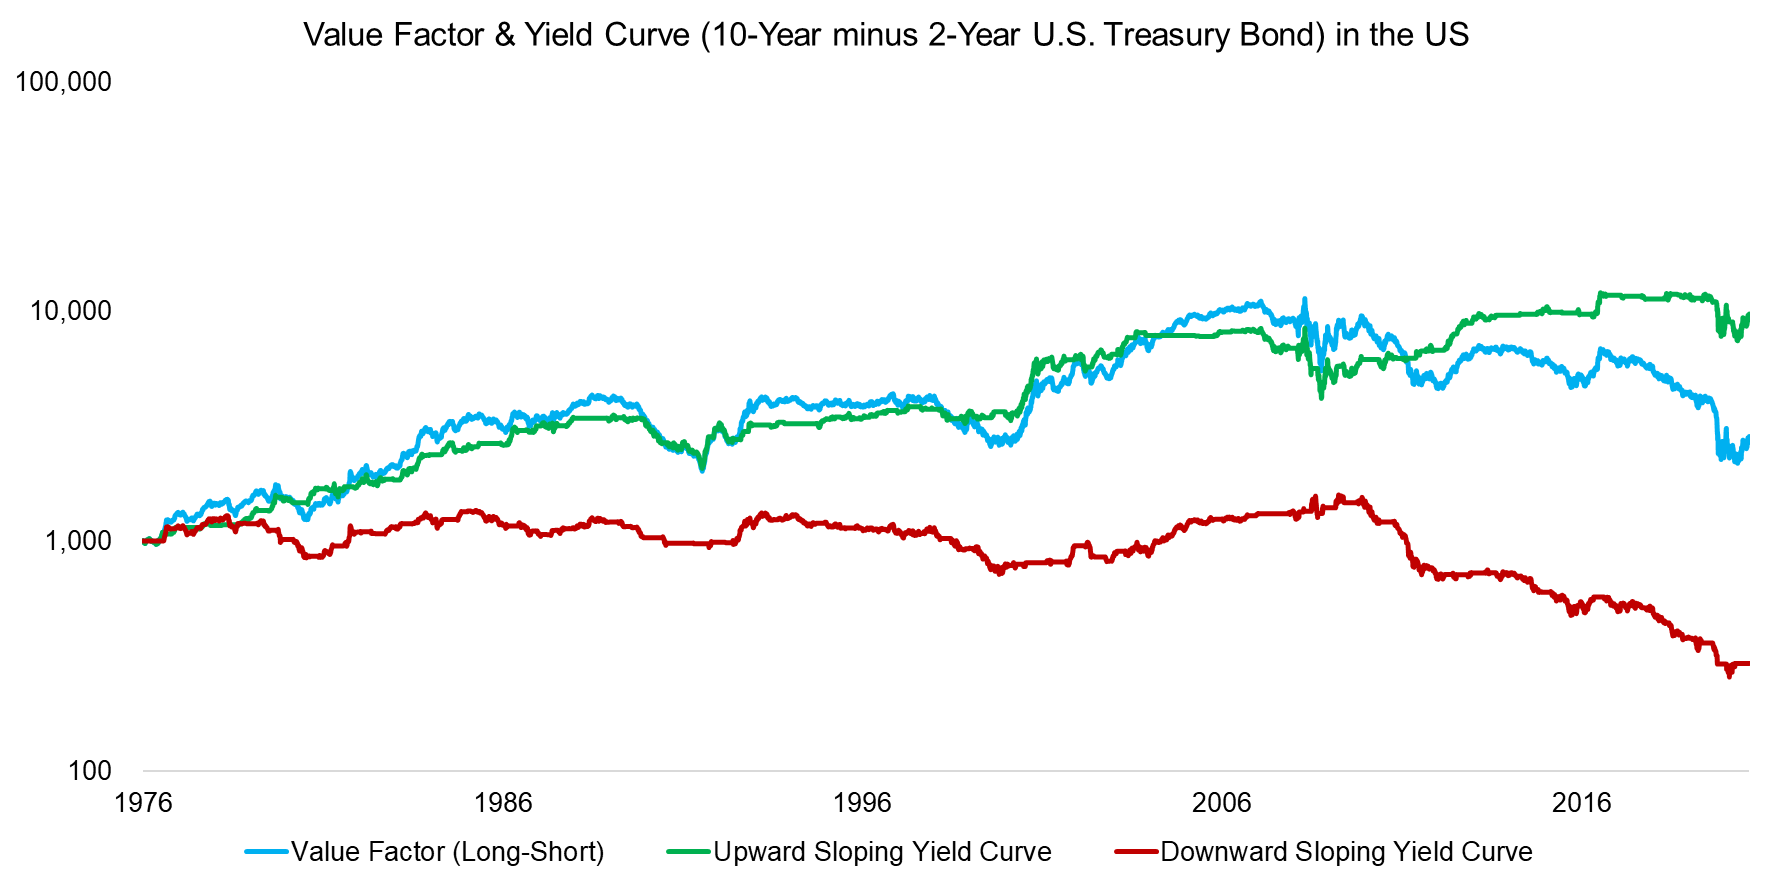 Value Factor & Yield Curve (10-Year minus 2-Year U.S. Treasury Bond) in the US